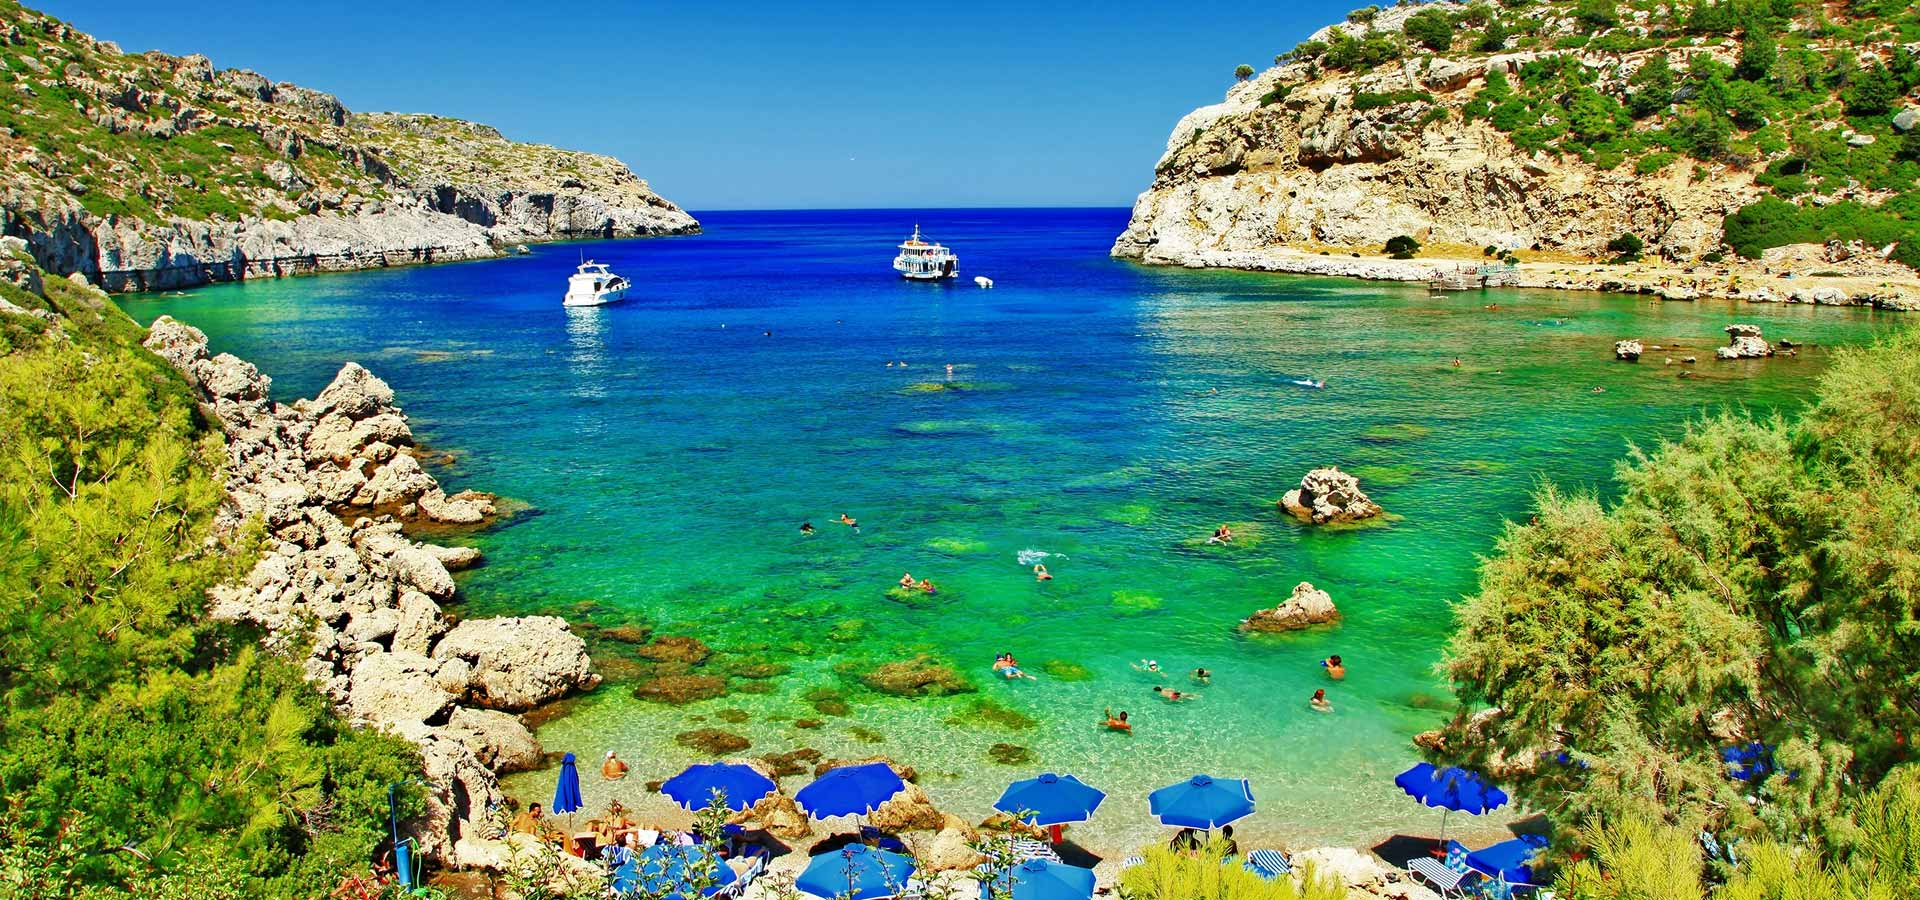 Top 10 Tourist Attractions in Rhodes Shouldn't Be Missed